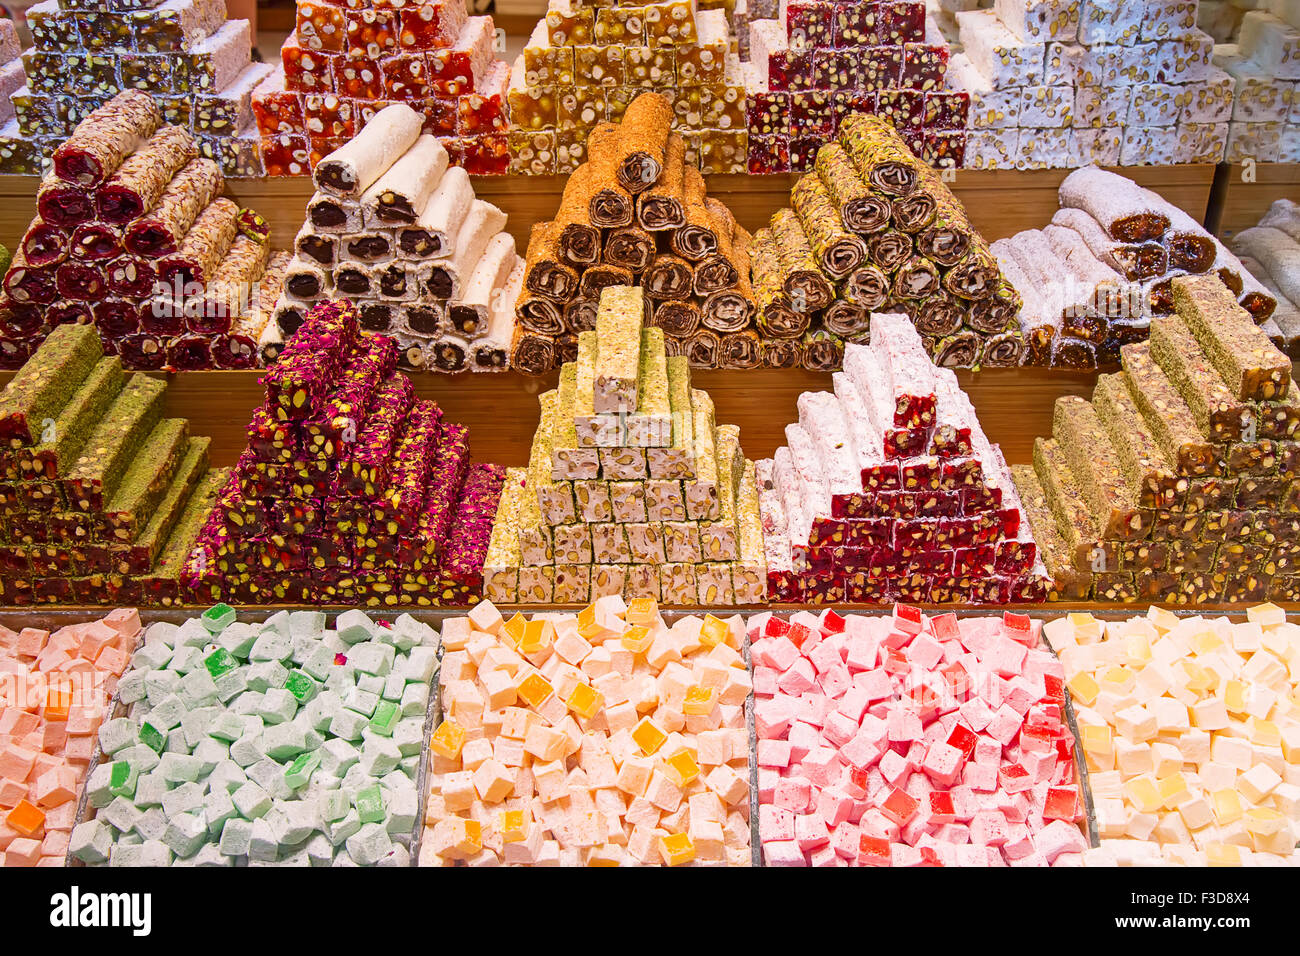 Famous turkish delights on the market Stock Photo